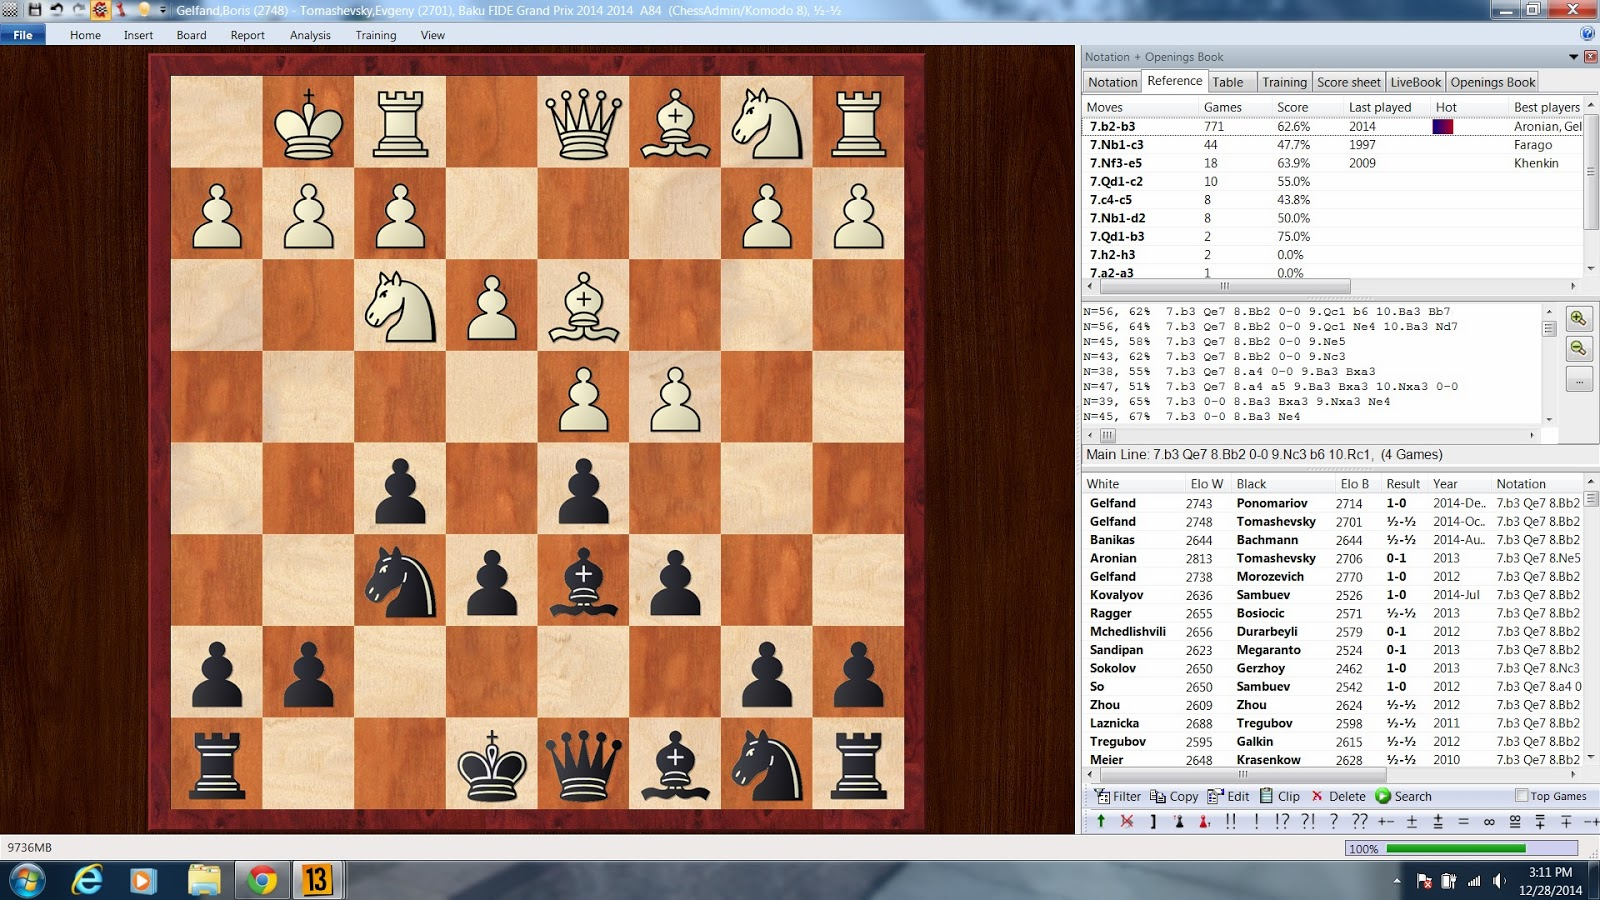 How do i get new games into my mega database? | chessbase.